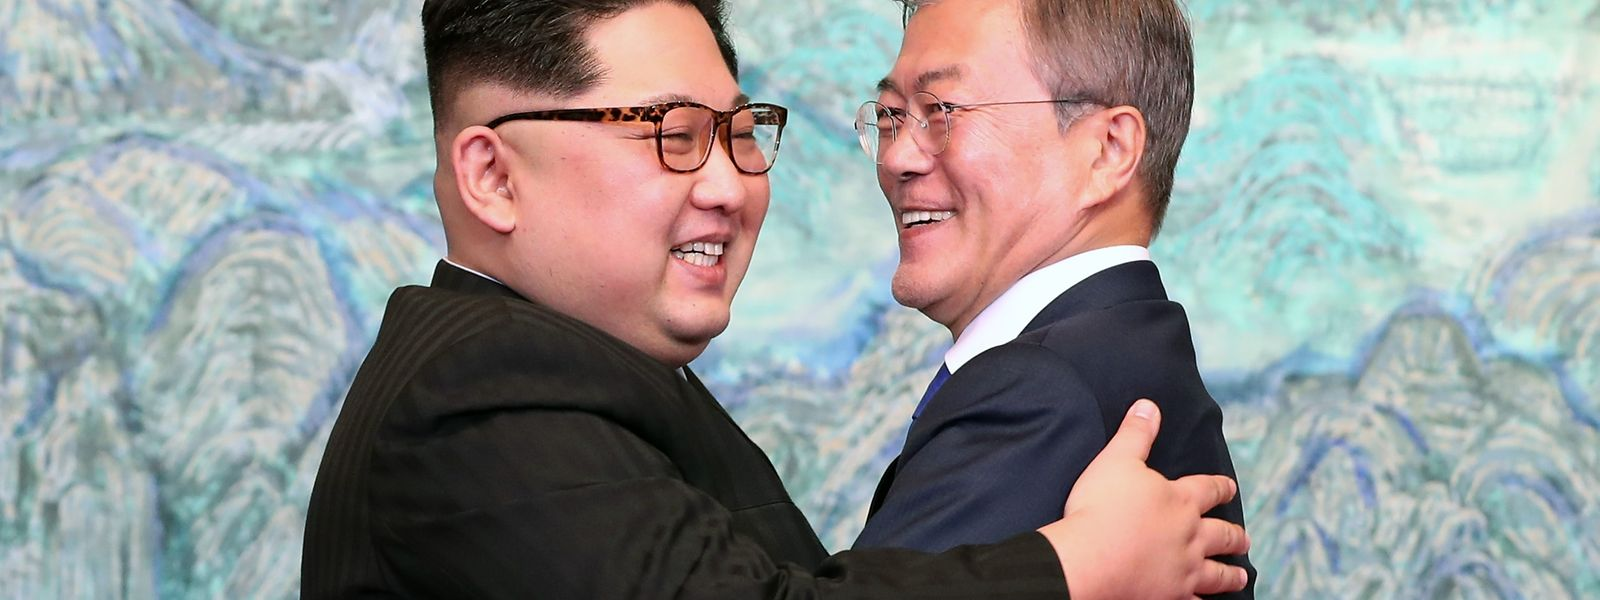 """North Korea's leader Kim Jong Un (L) and South Korea's President Moon Jae-in (R) hug during a signing ceremony near the end of their historic summit at the truce village of Panmunjom on April 27, 2018. The leaders of the two Koreas held a landmark summit on April 27 after a highly symbolic handshake over the Military Demarcation Line that divides their countries, with the North's Kim Jong Un declaring they were at the """"threshold of a new history"""". / AFP PHOTO / Korea Summit Press Pool / Korea Summit Press Pool"""